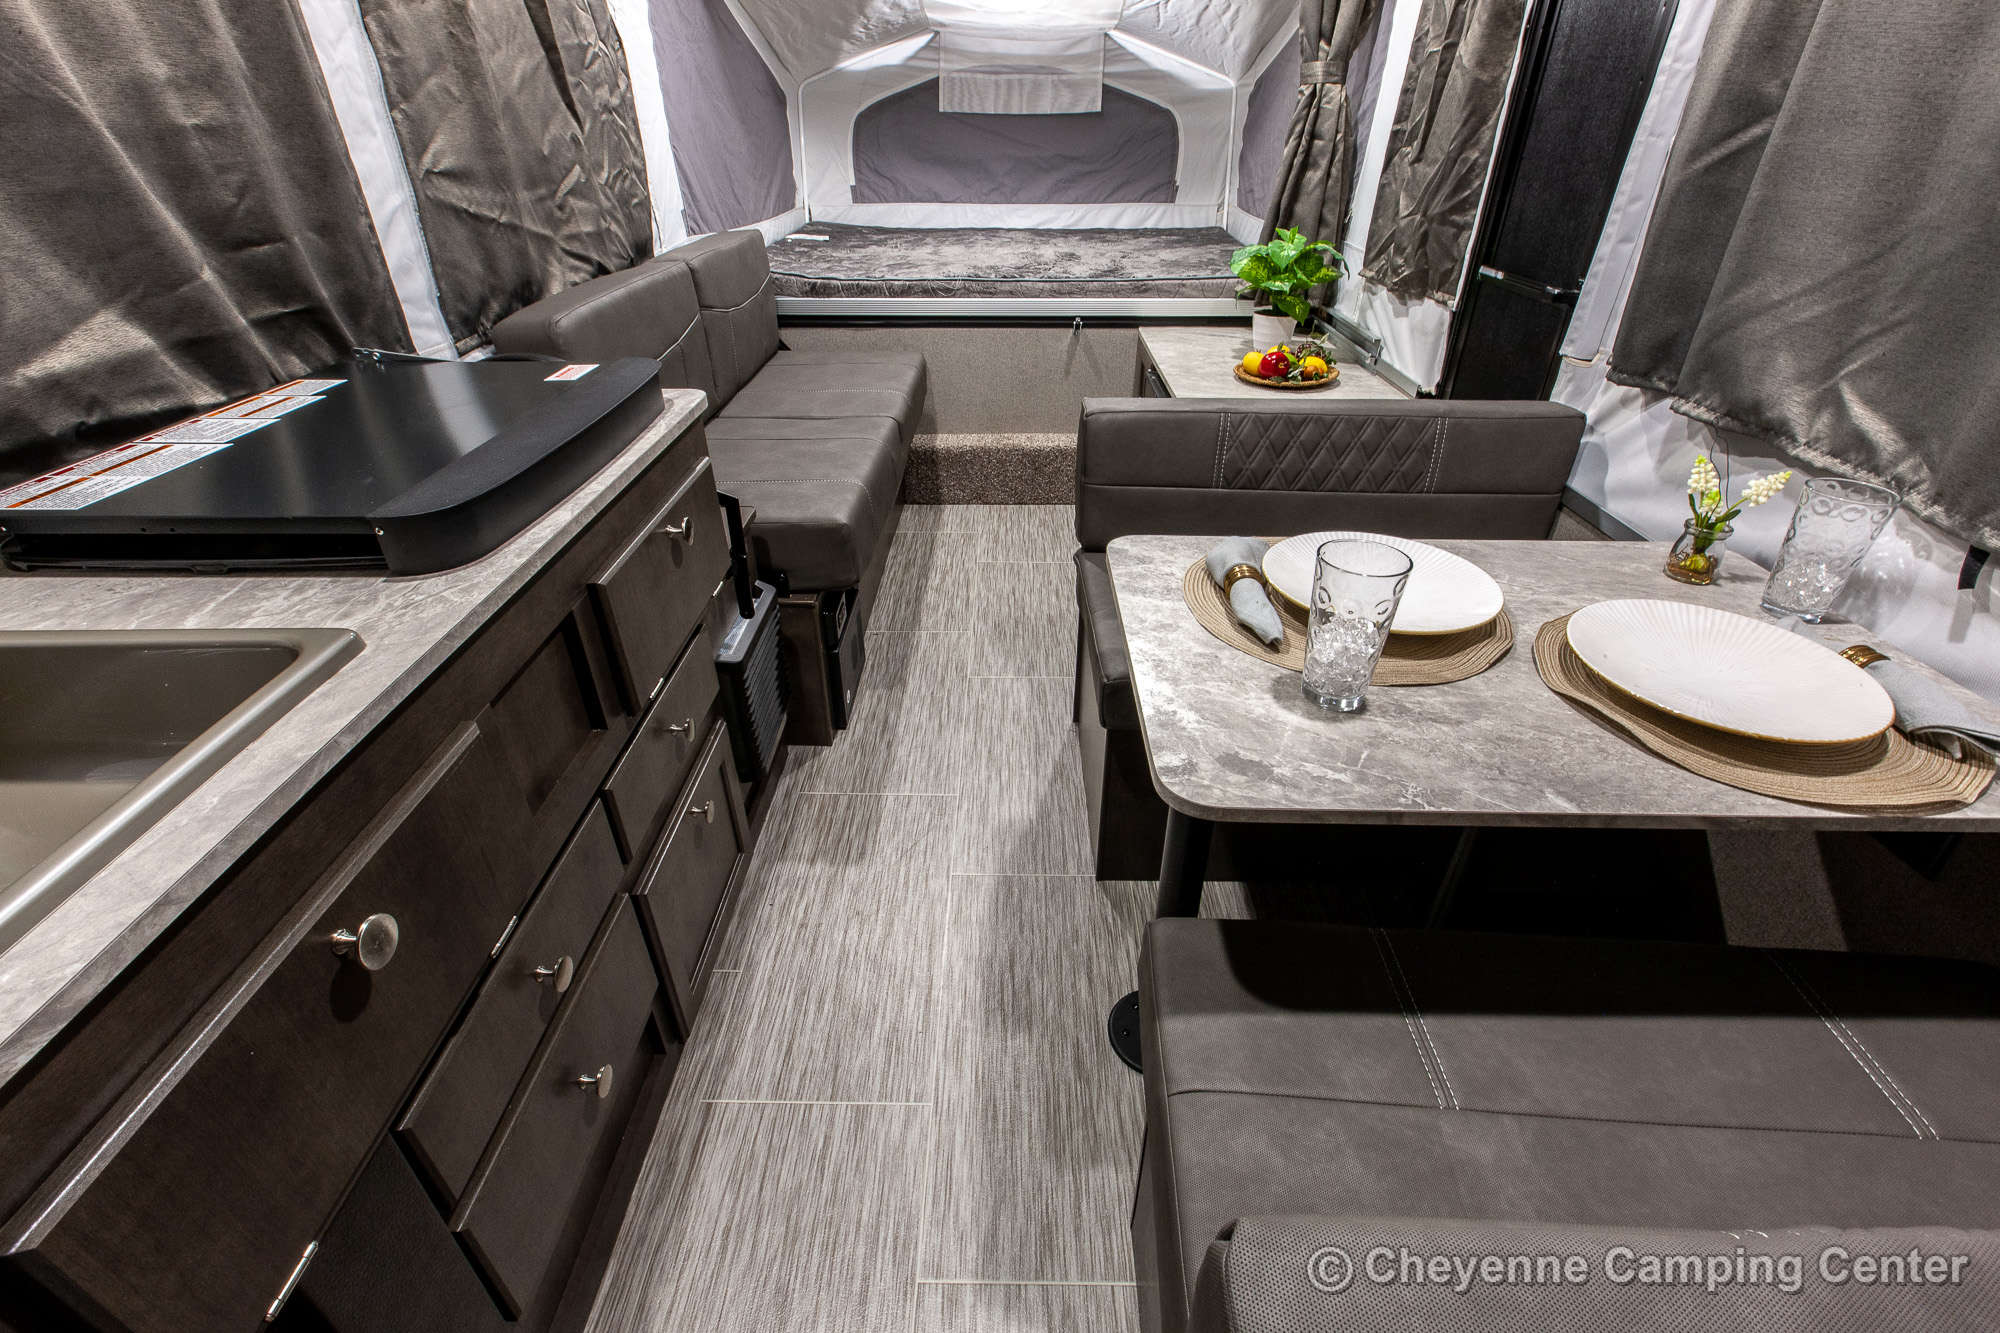 2021 Forest River Flagstaff Sports Enthusiast 207SE Folding Camper Interior Image